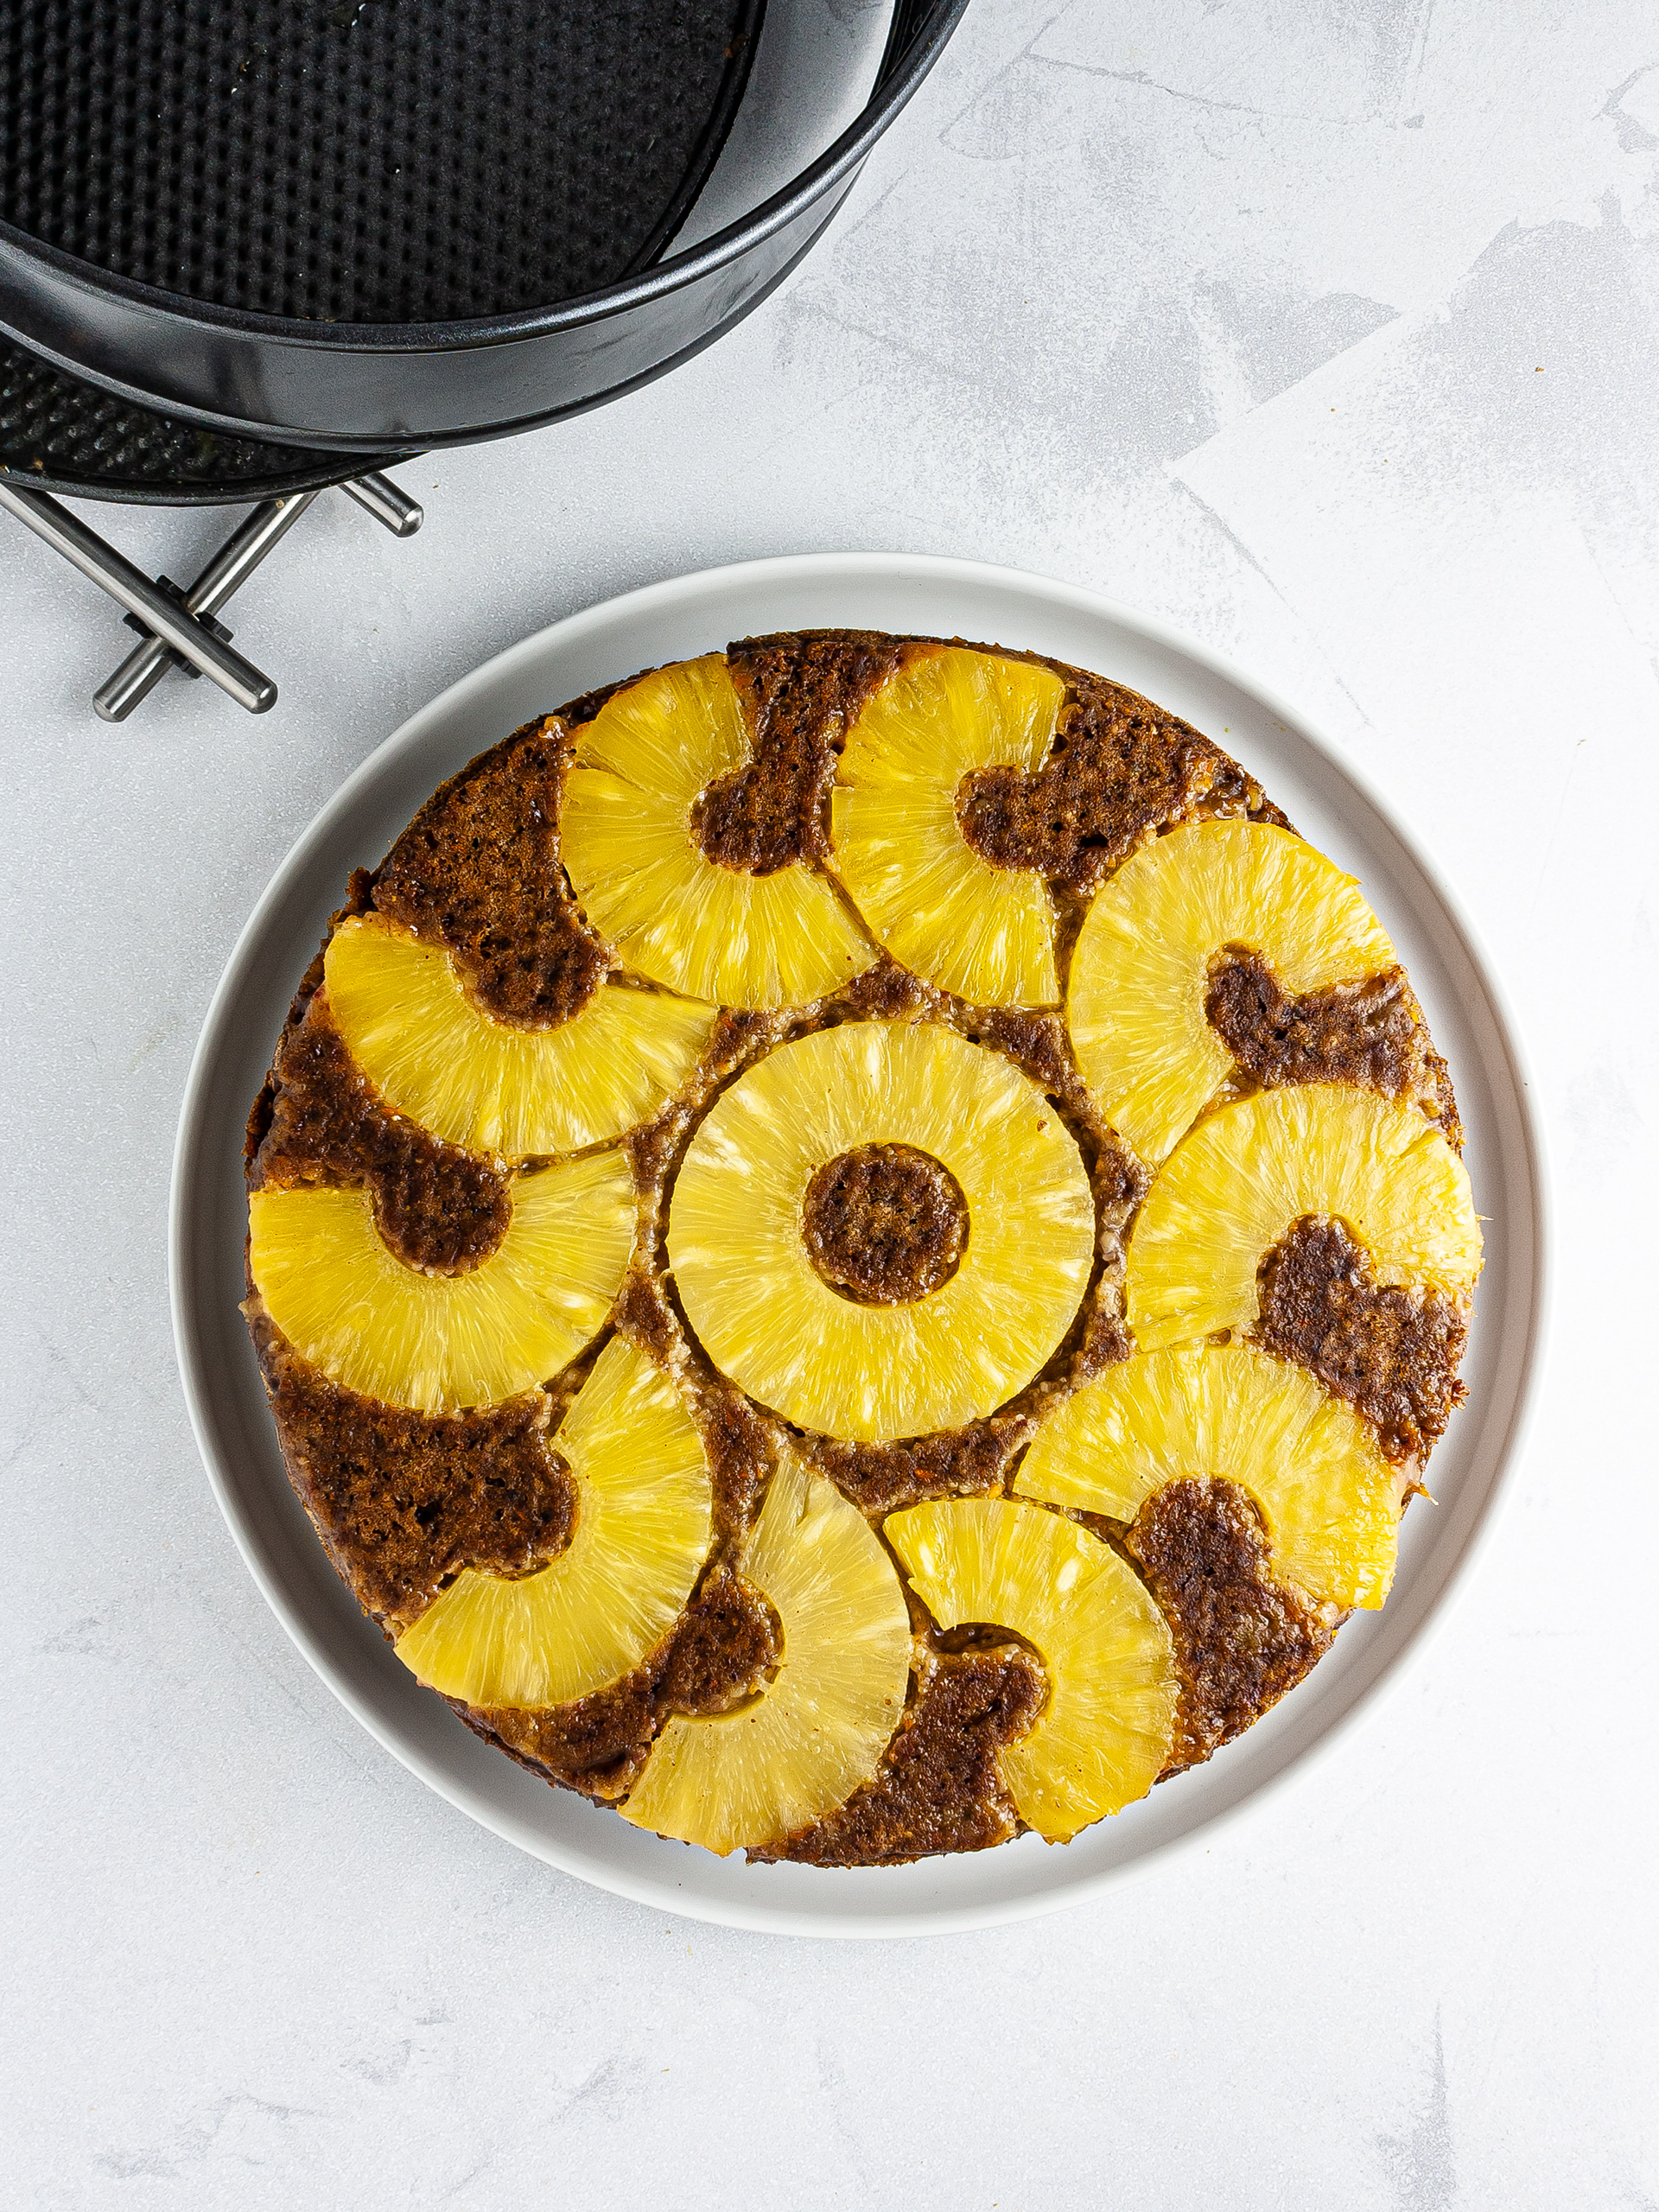 Baked and flipped carrot pineapple cake.